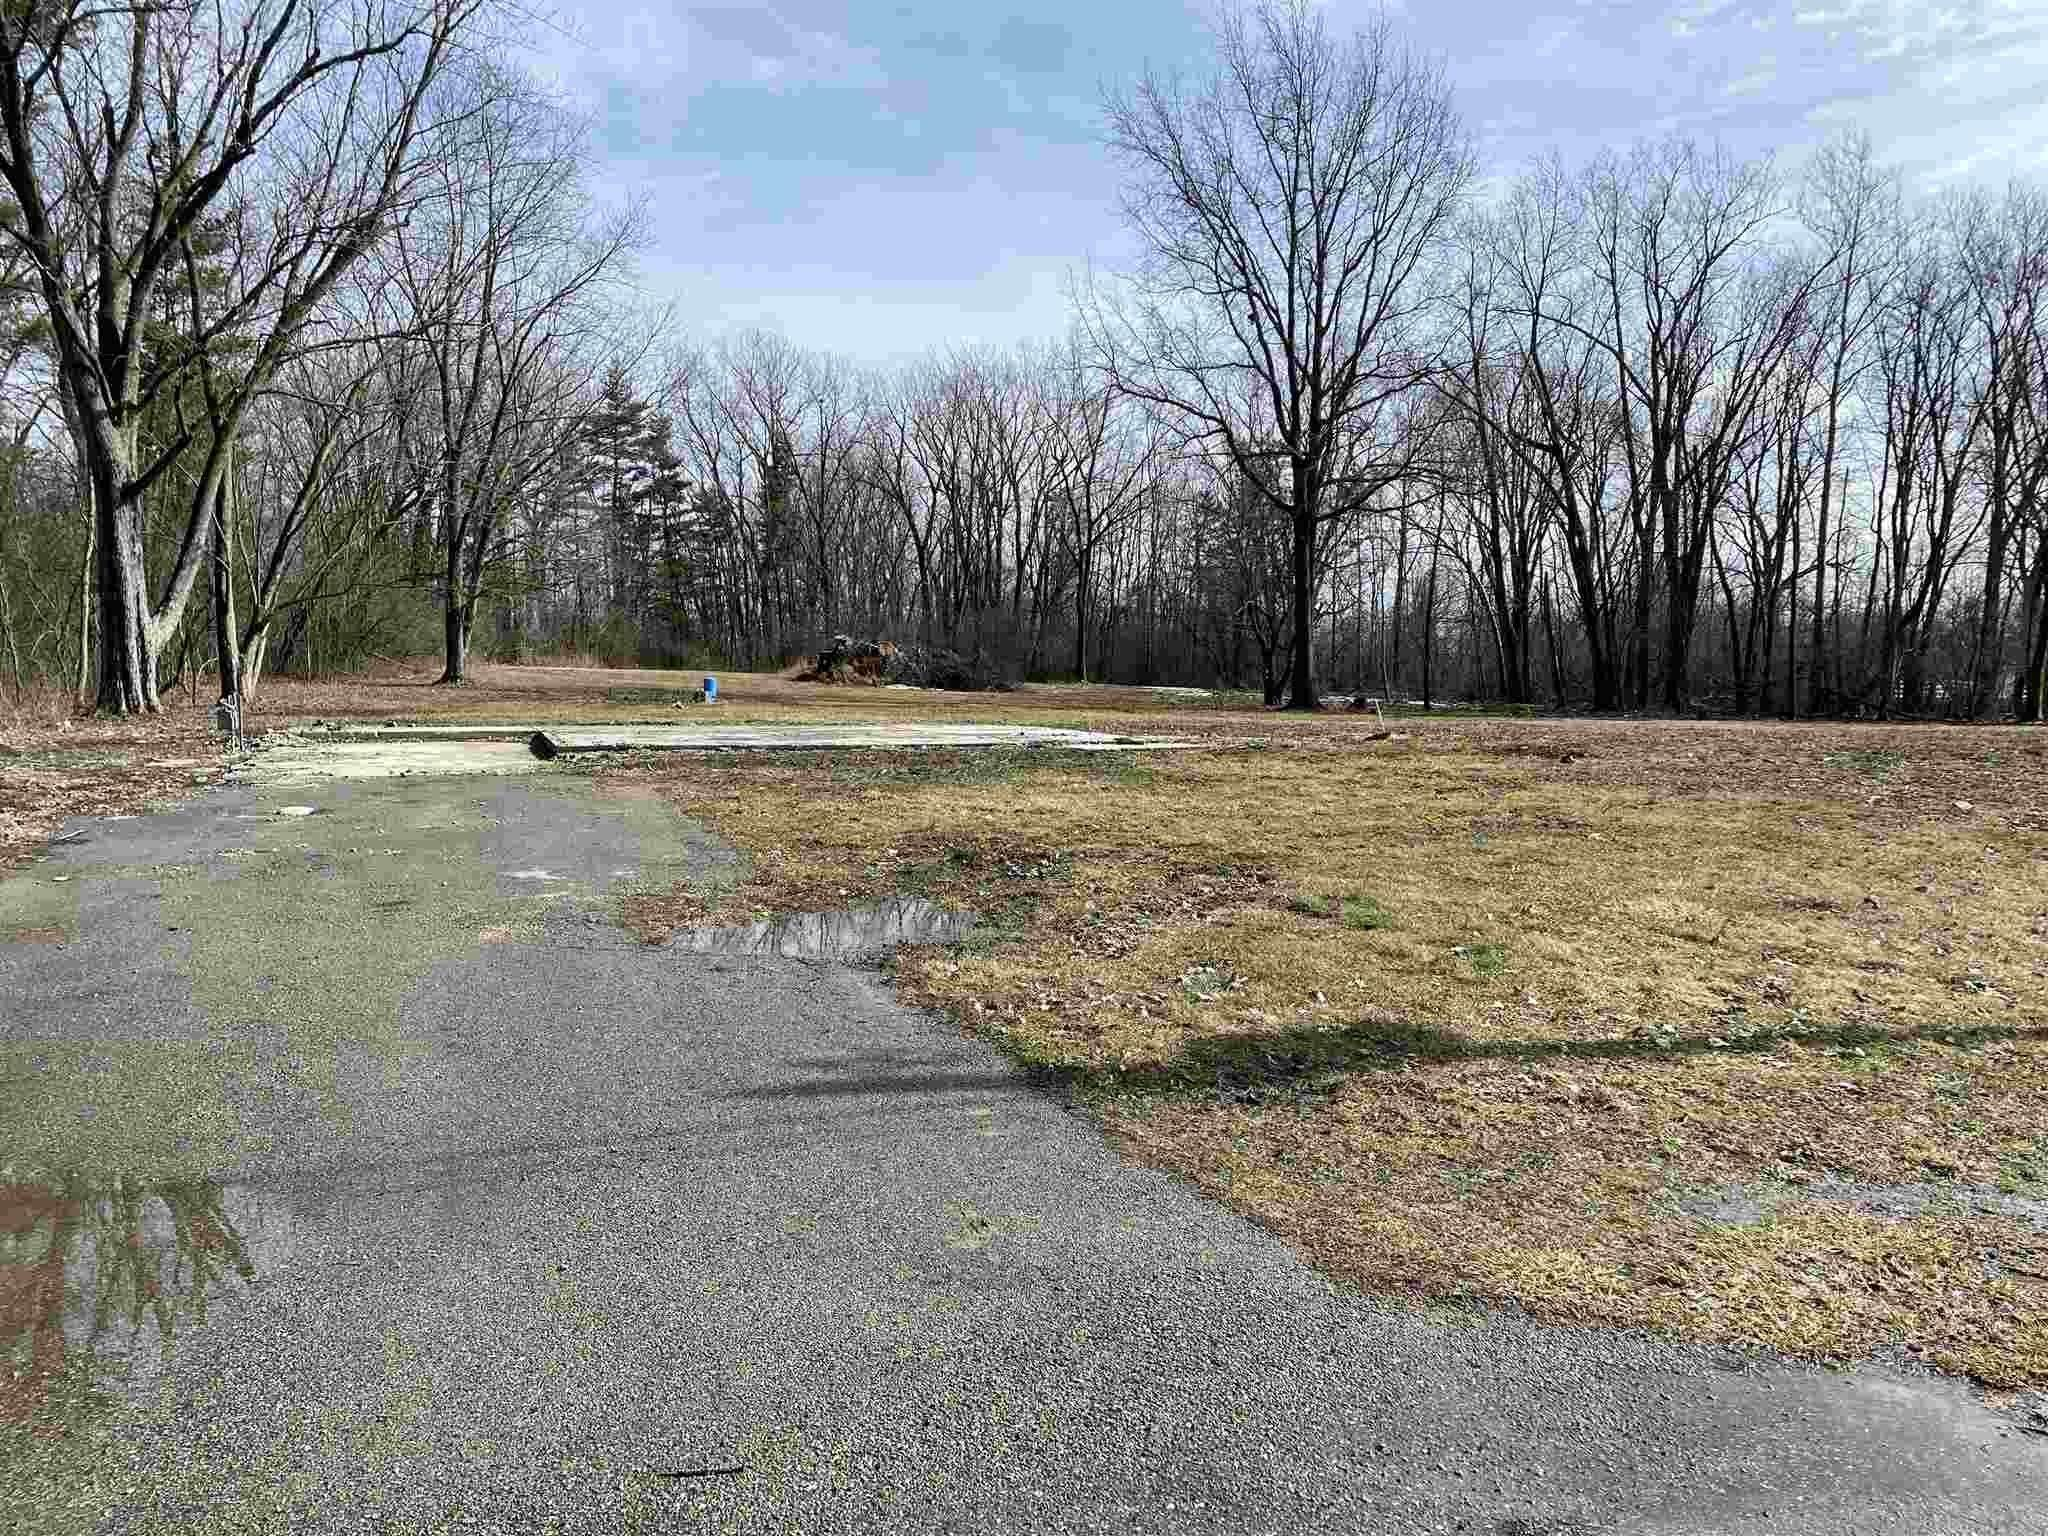 Residential Lots & Land for Sale at 4899 S Broad Street Dunkirk, Indiana 47336 United States